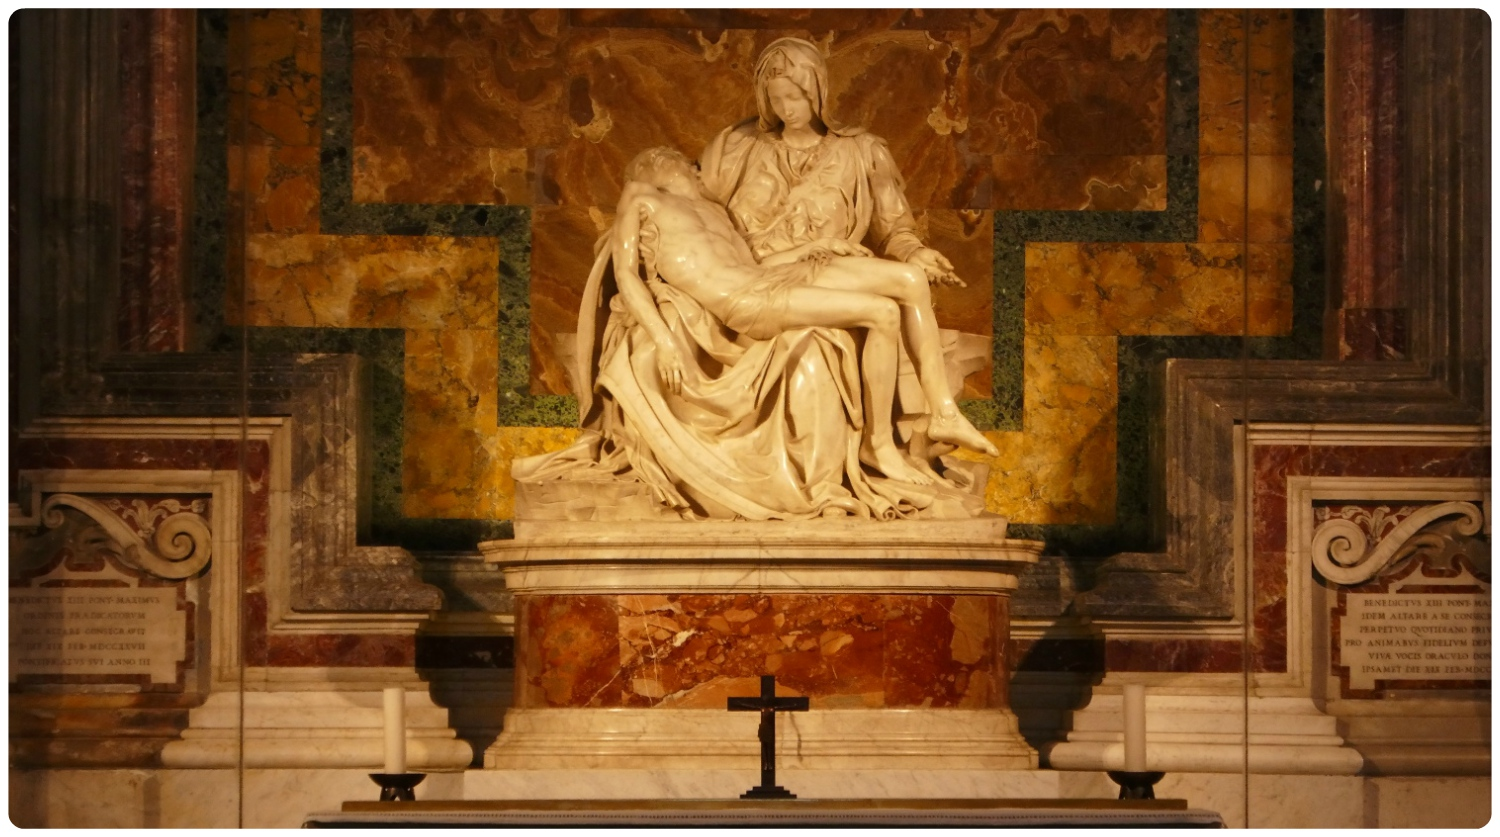 Michelangelo's Sculpture Pietà (The Pity) in the Vatican's St. Peter's Basilica. Vatican City State.